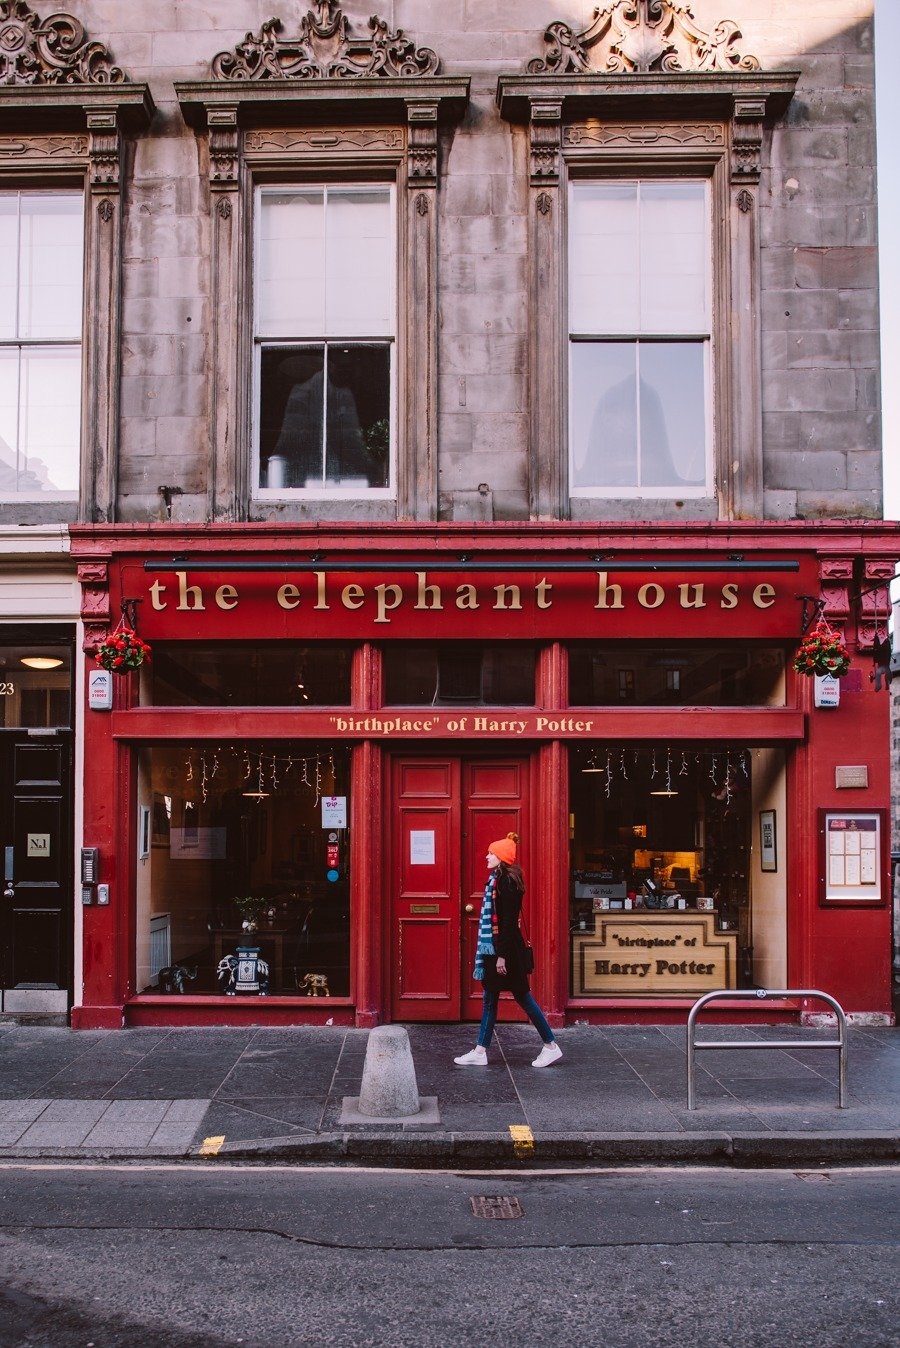 The Elephant House is the cafe in Edinburgh where JK Rowling wrote Harry Potter